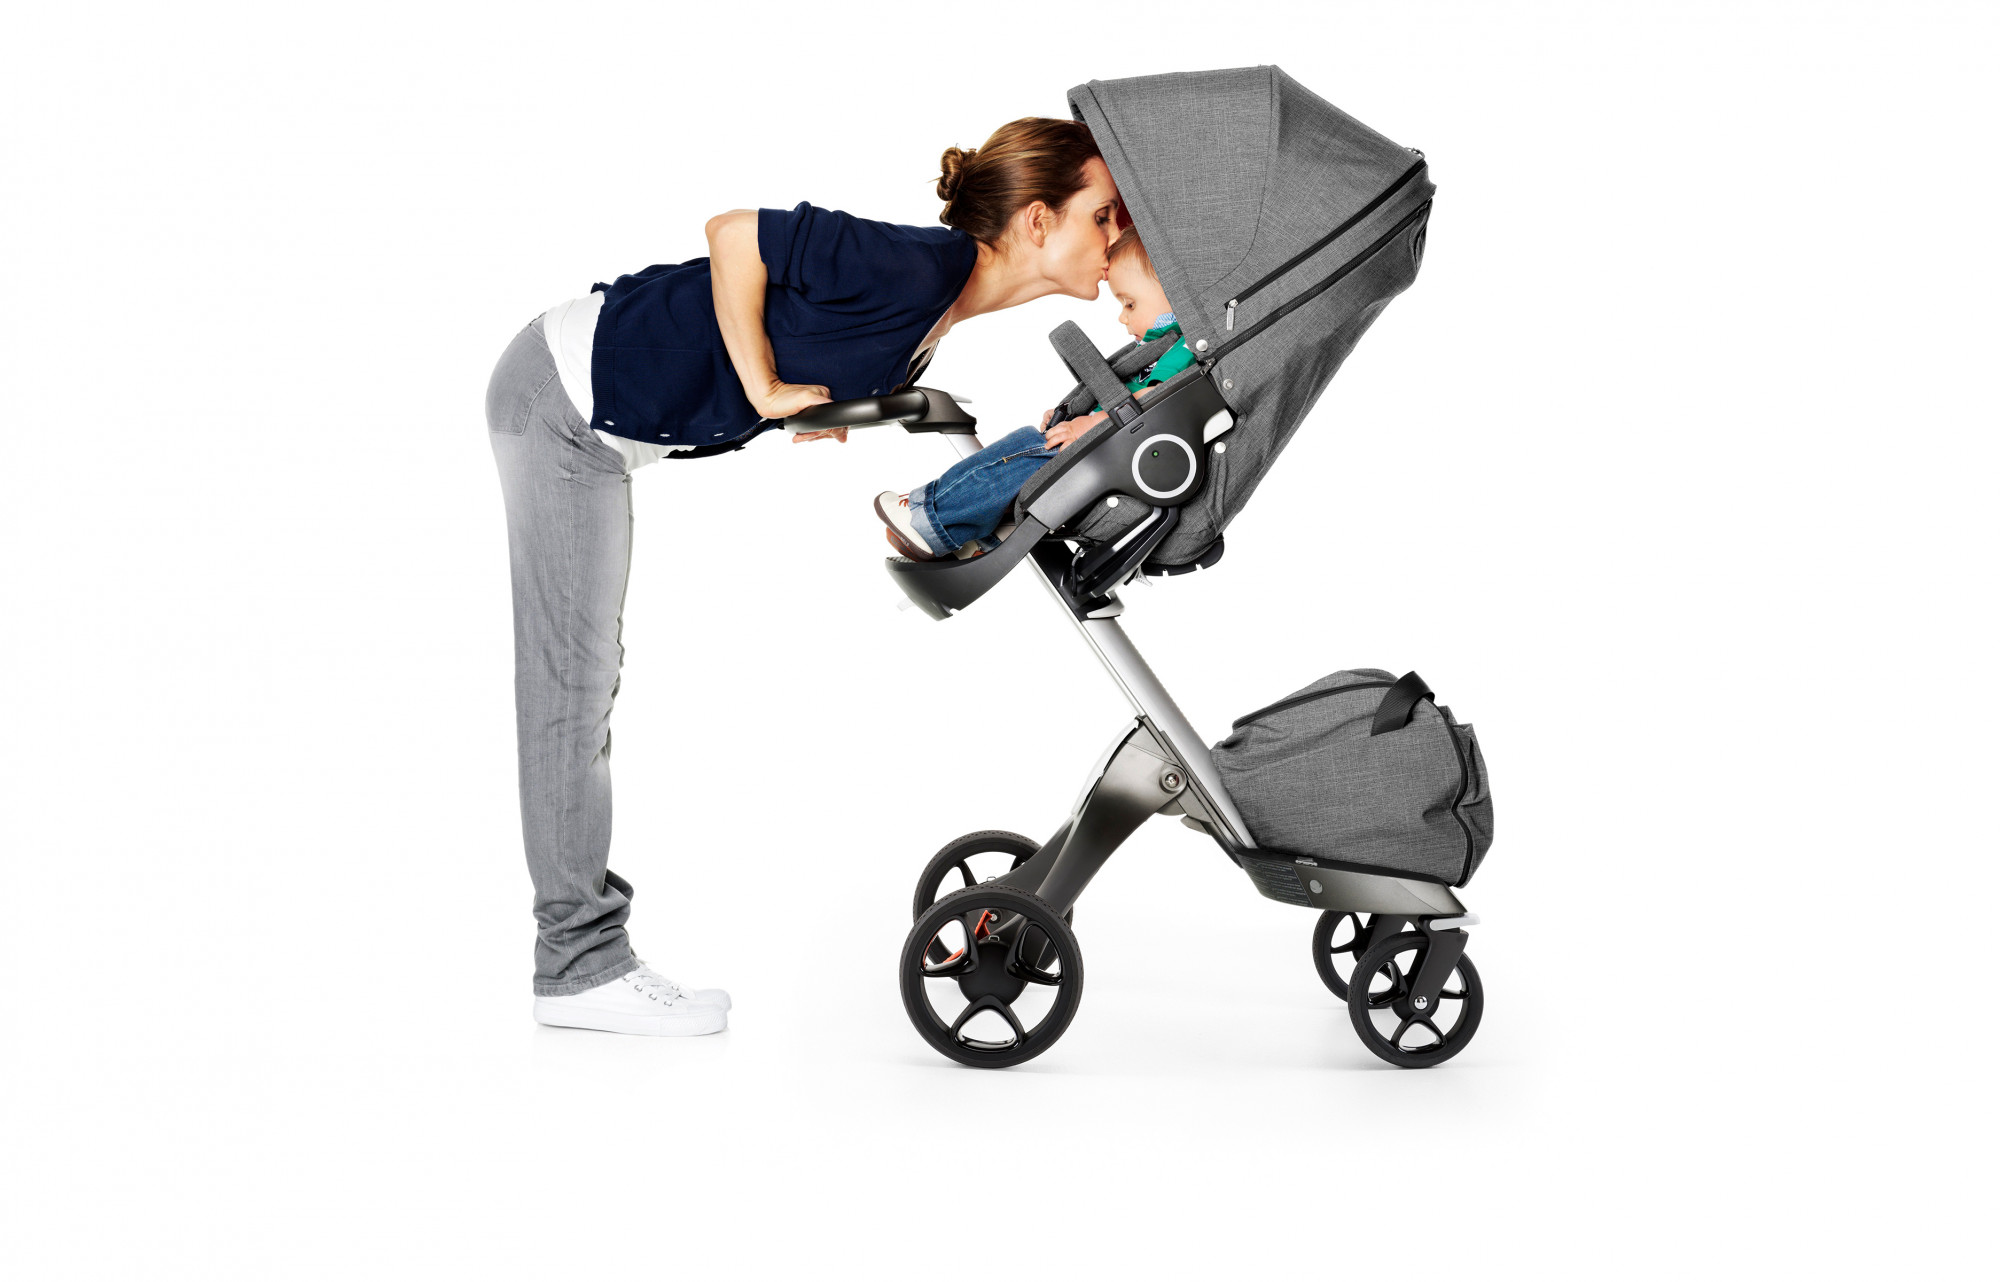 Stokke-Xplory-091215-1215211-black-melange-new-wheels-2016-I